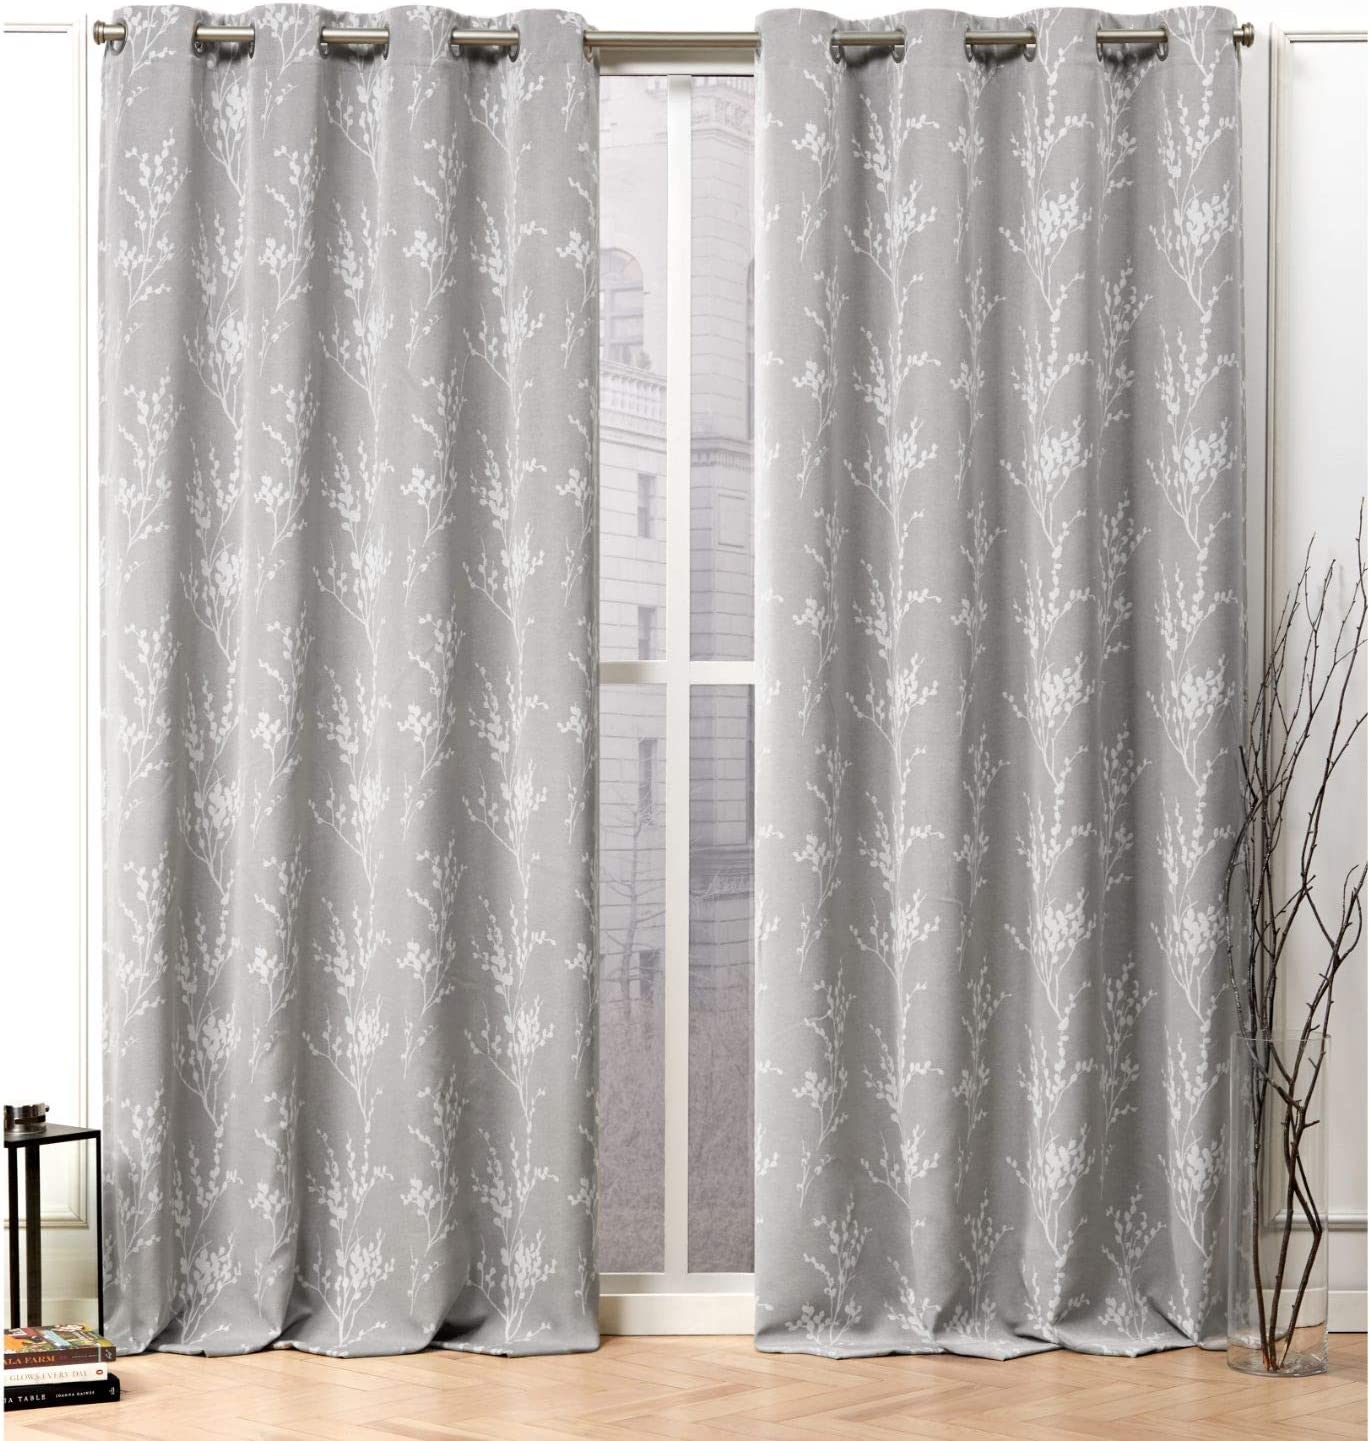 Nicole Miller Turion Cheap SALE Start Curtain Cheap super special price Panel Ash 2 Panels Grey 52x96